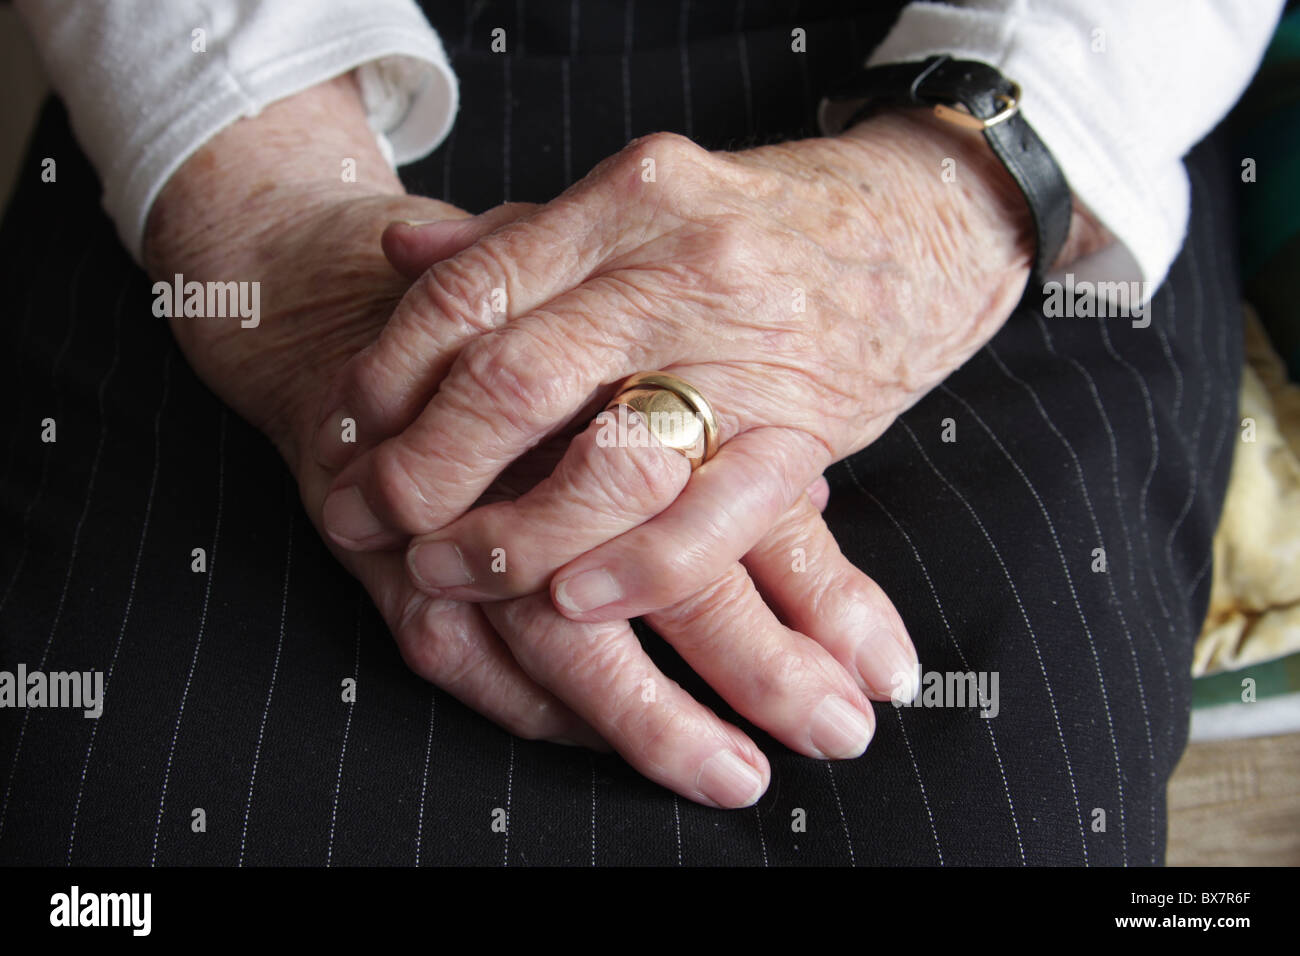 An elderly womans hands showing the effects of Arthritis. - Stock Image